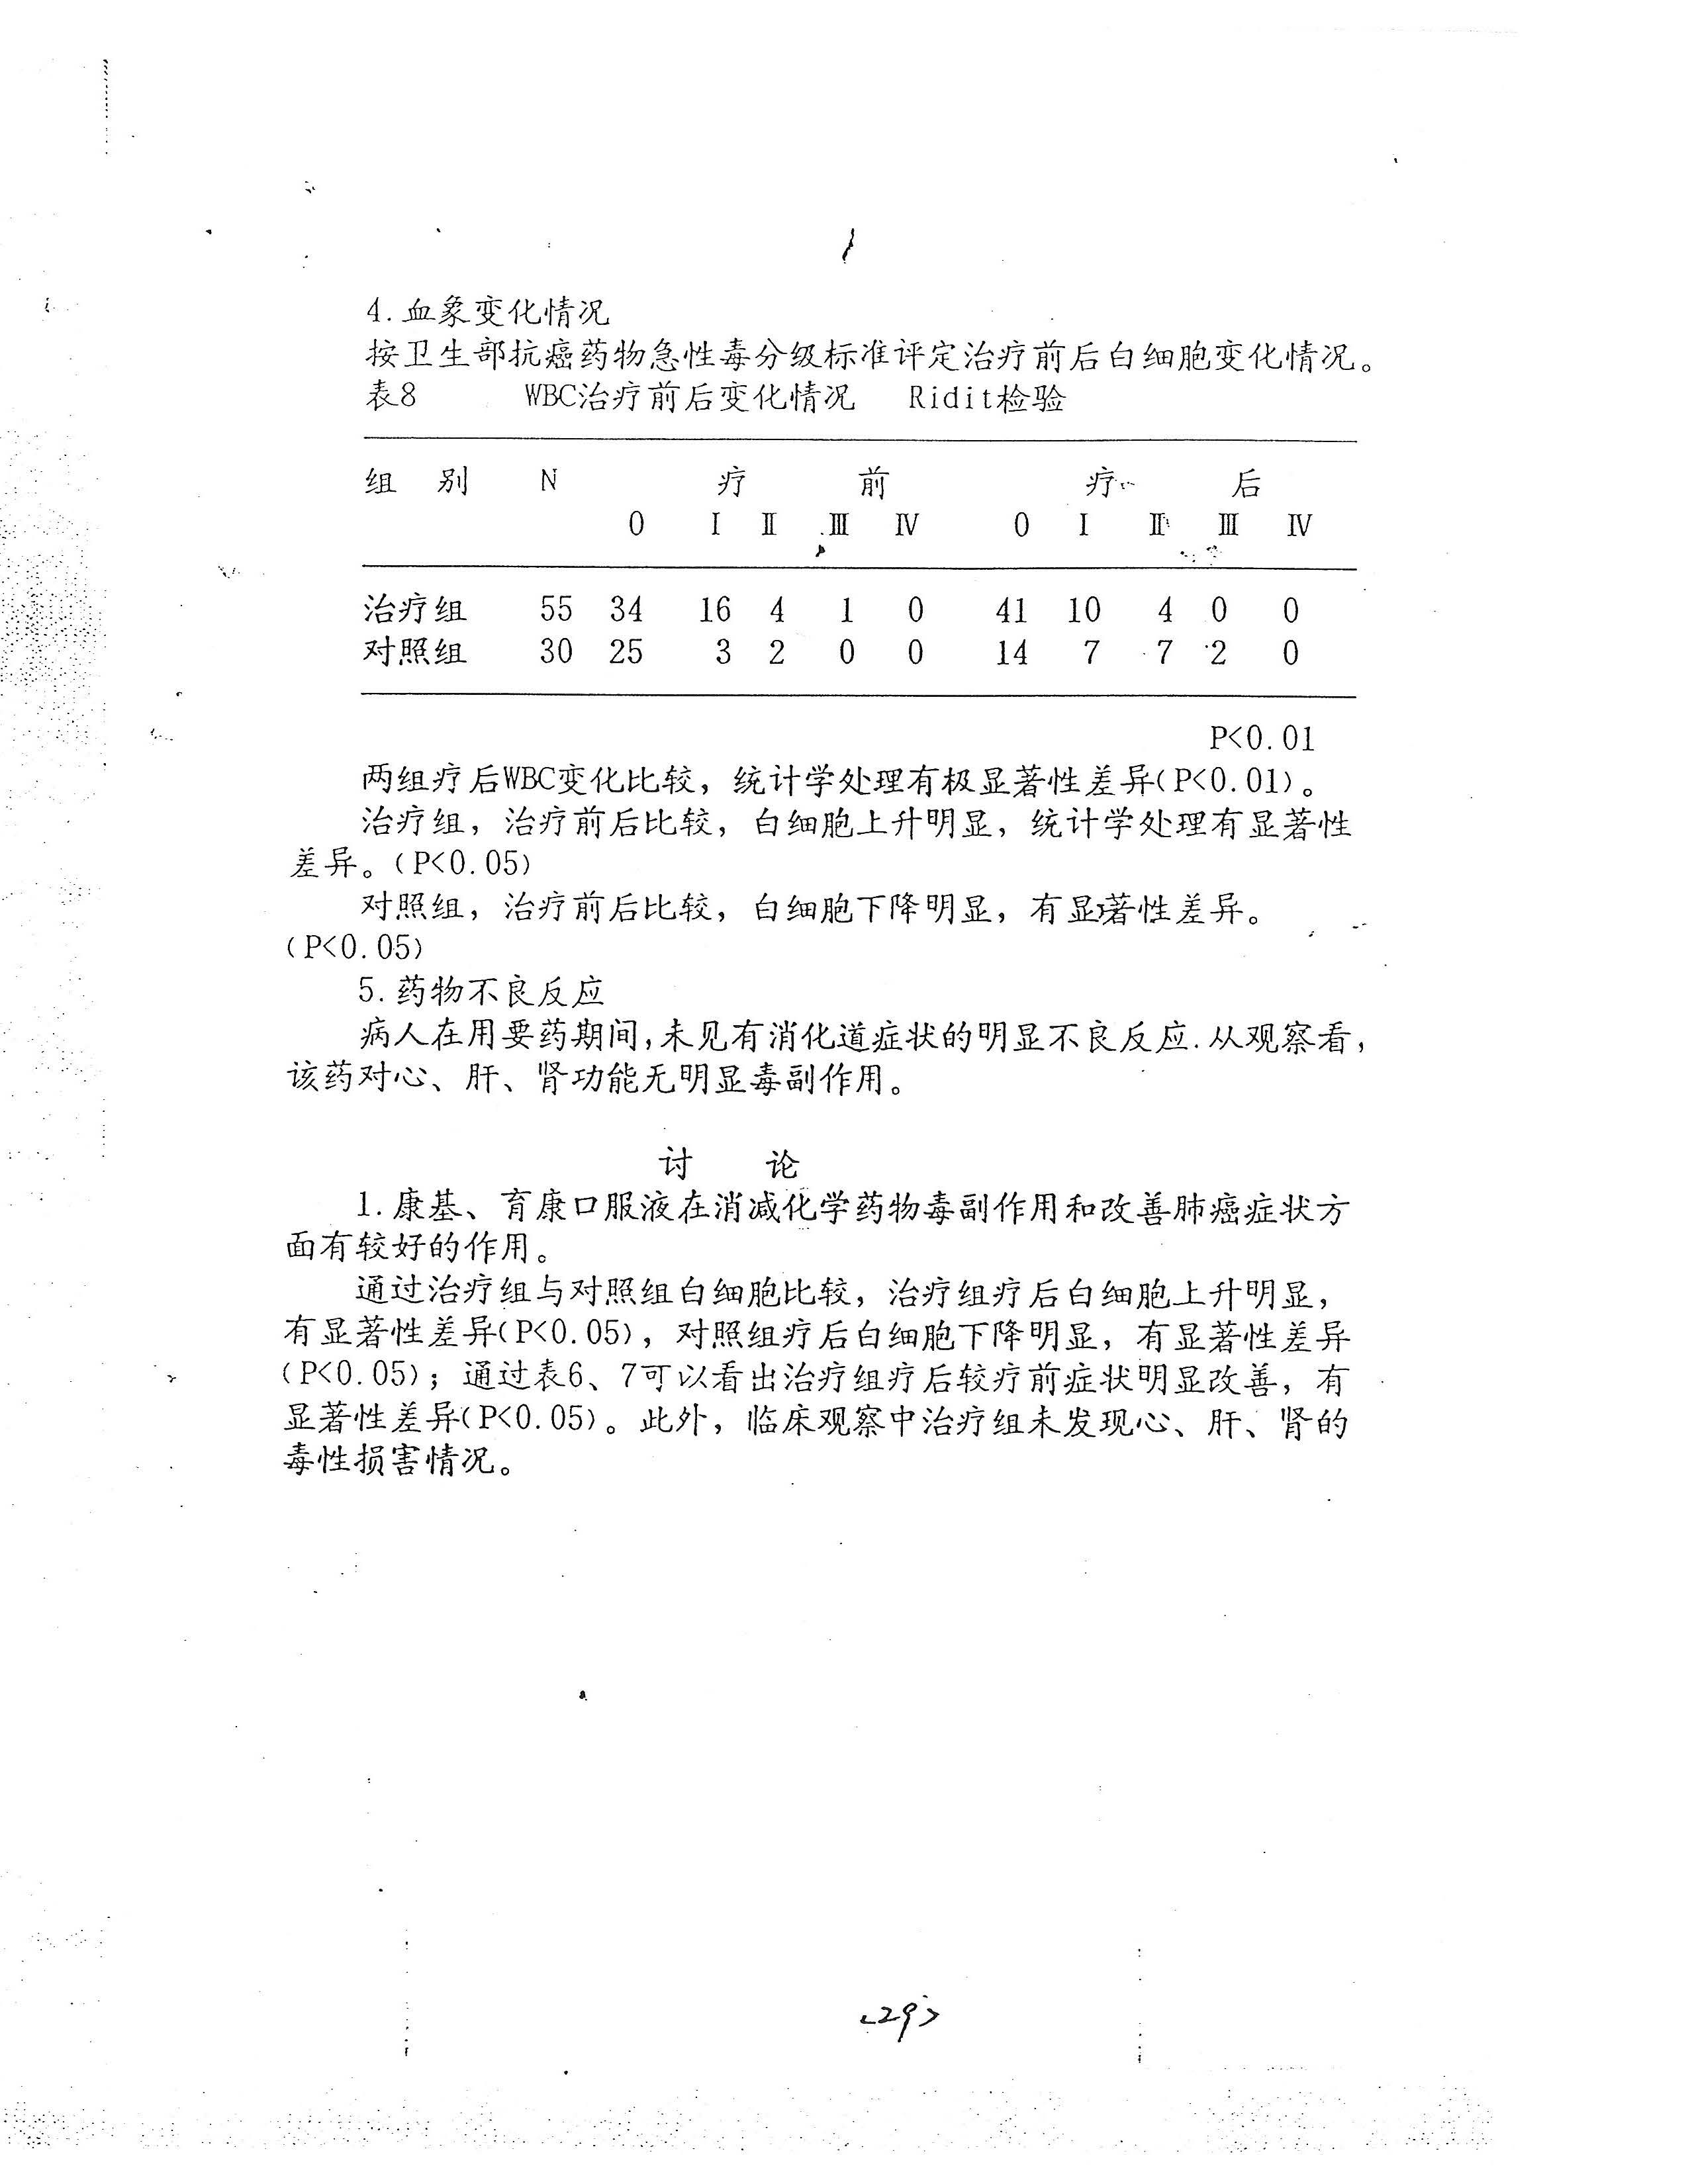 clinical_Page_31